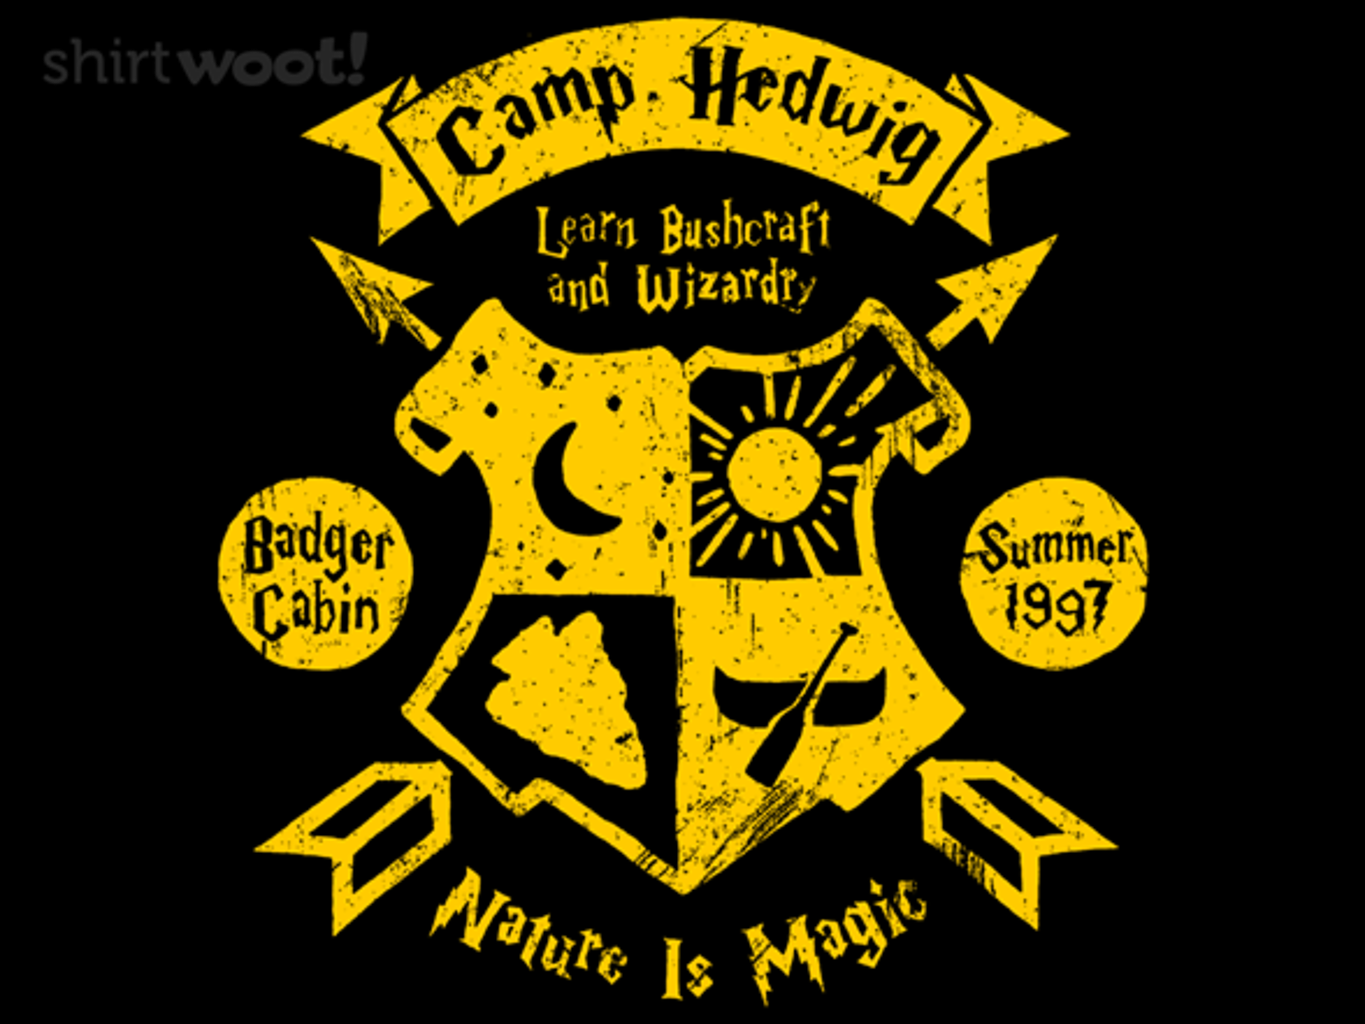 Woot!: Camp Hedwig Badgers